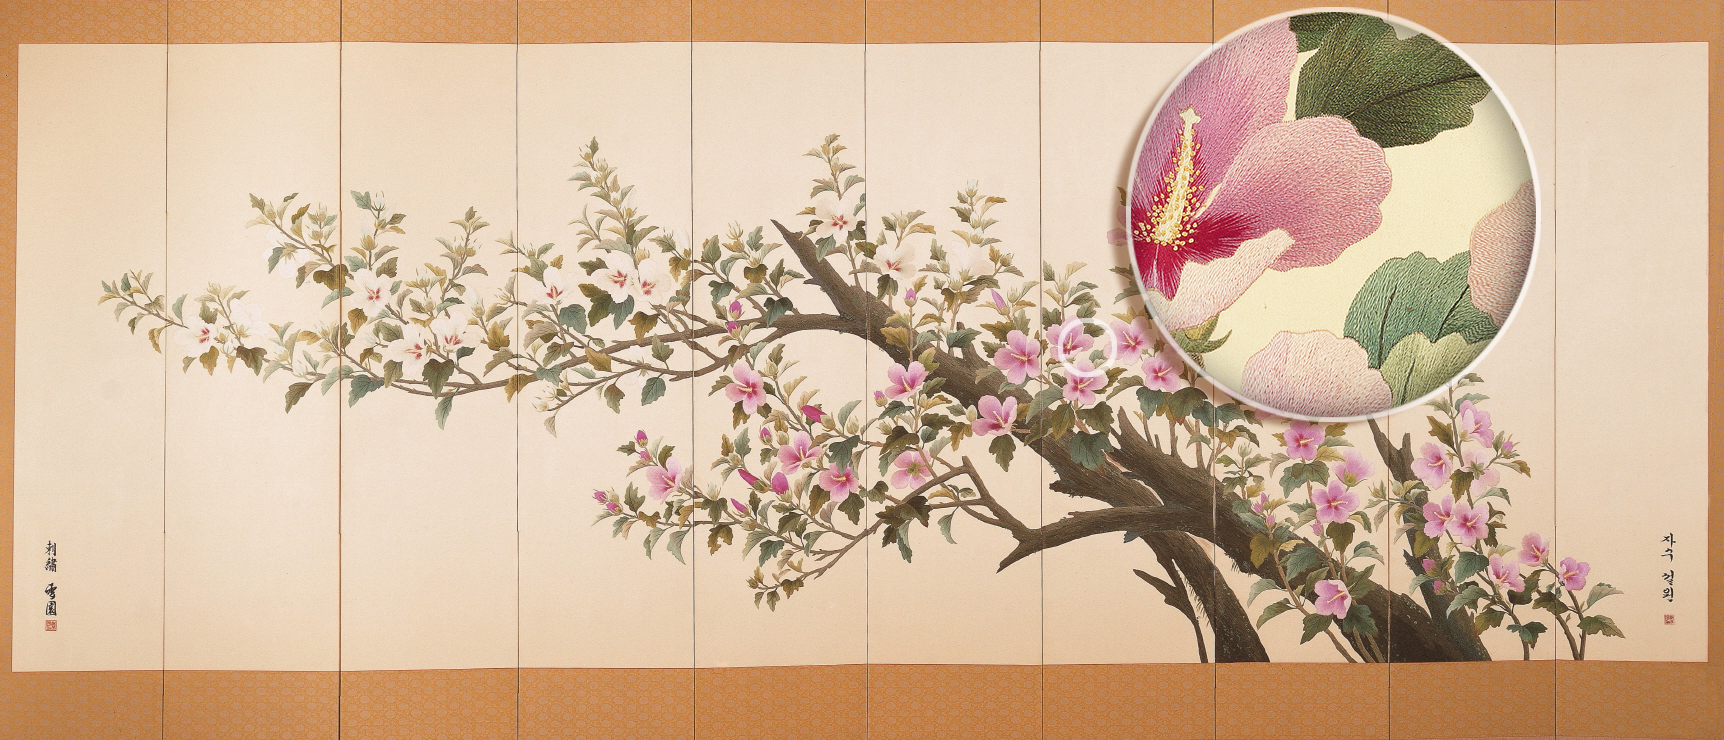 """Unification (10-panel folding screen)   Young Yang Chung Korea, 1960s   Featuring Korea's national flower, the  mugunghwa (more commonly known as the """"Rose of Sharon""""), this screen was commissioned by the Korean government for display in the presidential mansion. Configured in the shape of the Korean peninsula, with the white flowers on the left symbolizing South Korea and the red flowers on the right representing the North, this blossoming branch of  mugunghwa expresses the hope for reunification as well the strength and fortitude of Korea's national spirit, as the  mugunghwa is renowned for its power of endurance.  Applying just one square inch of such fine embroidery entails several hours of labor; this screen required over three years to complete.  Photo credit: John Bigelow Taylor"""